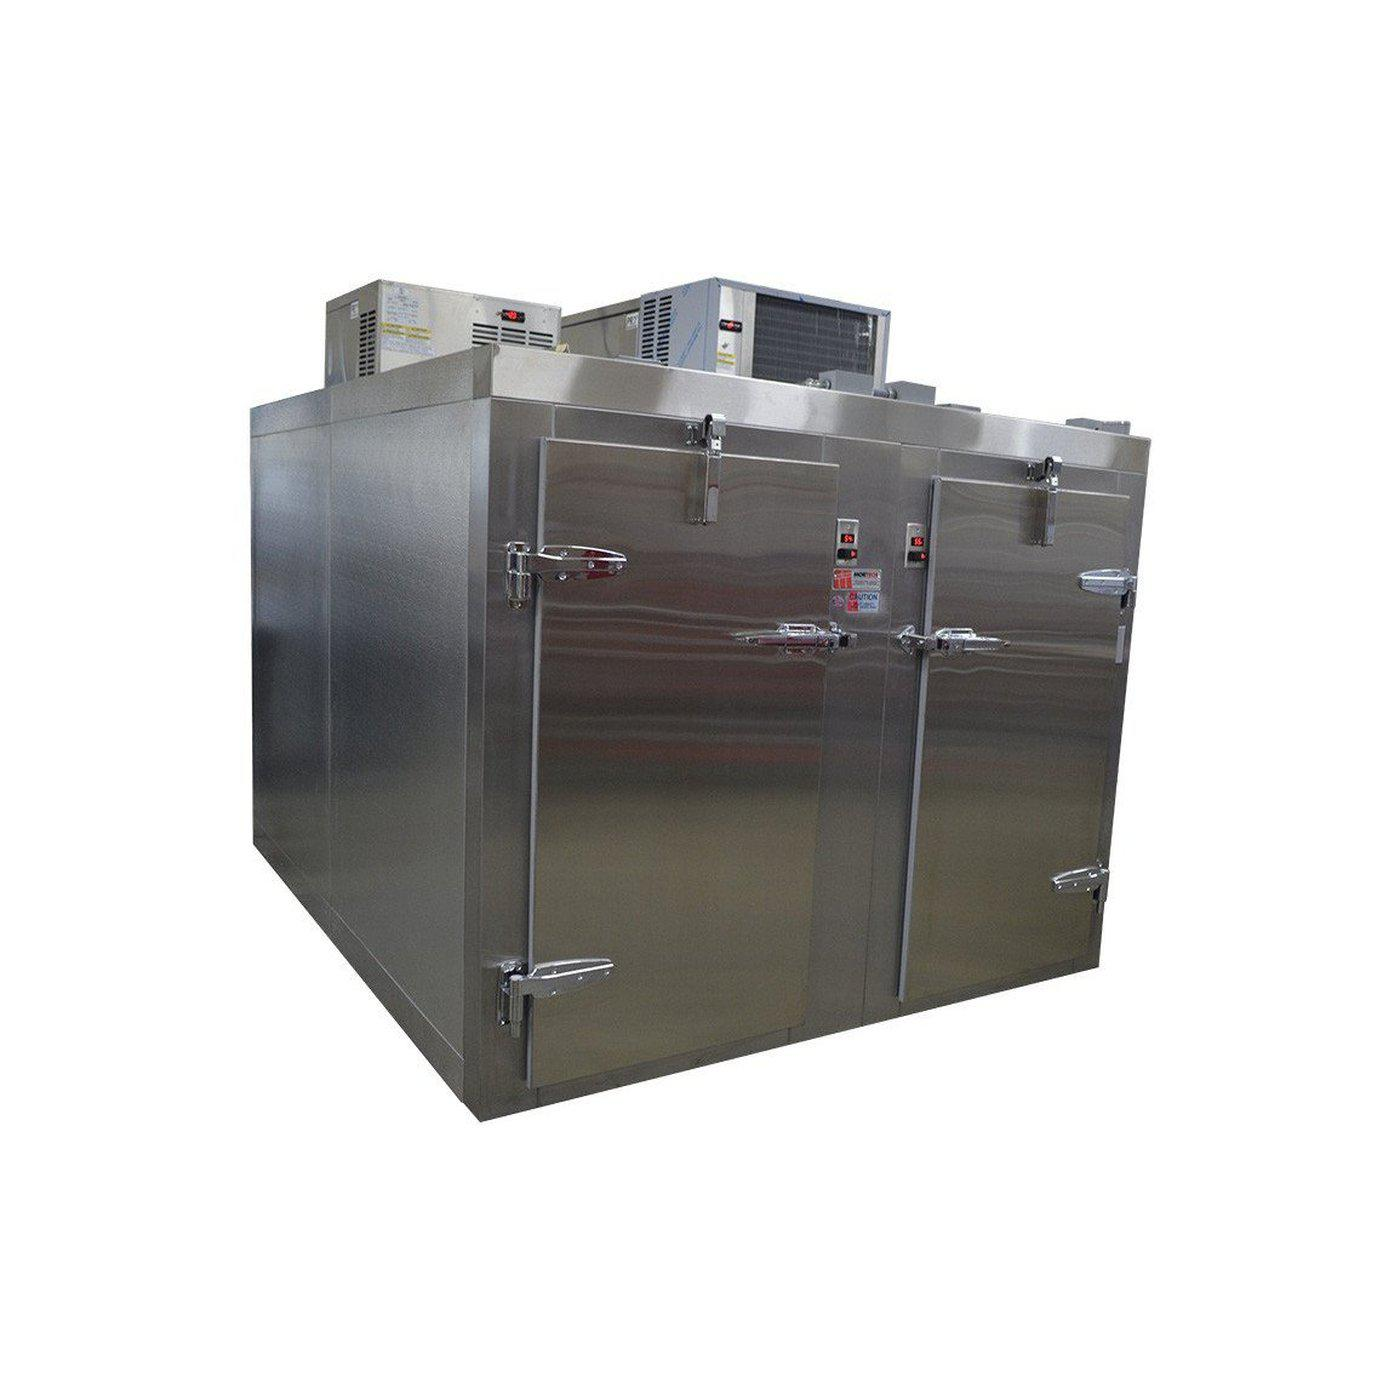 Dual Temperature Refrigerator / Freezer-Refrigeration-Mortech Manufacturing Company Inc. Quality Stainless Steel Autopsy, Morgue, Funeral Home, Necropsy, Veterinary / Anatomy, Dissection Equipment and Accessories